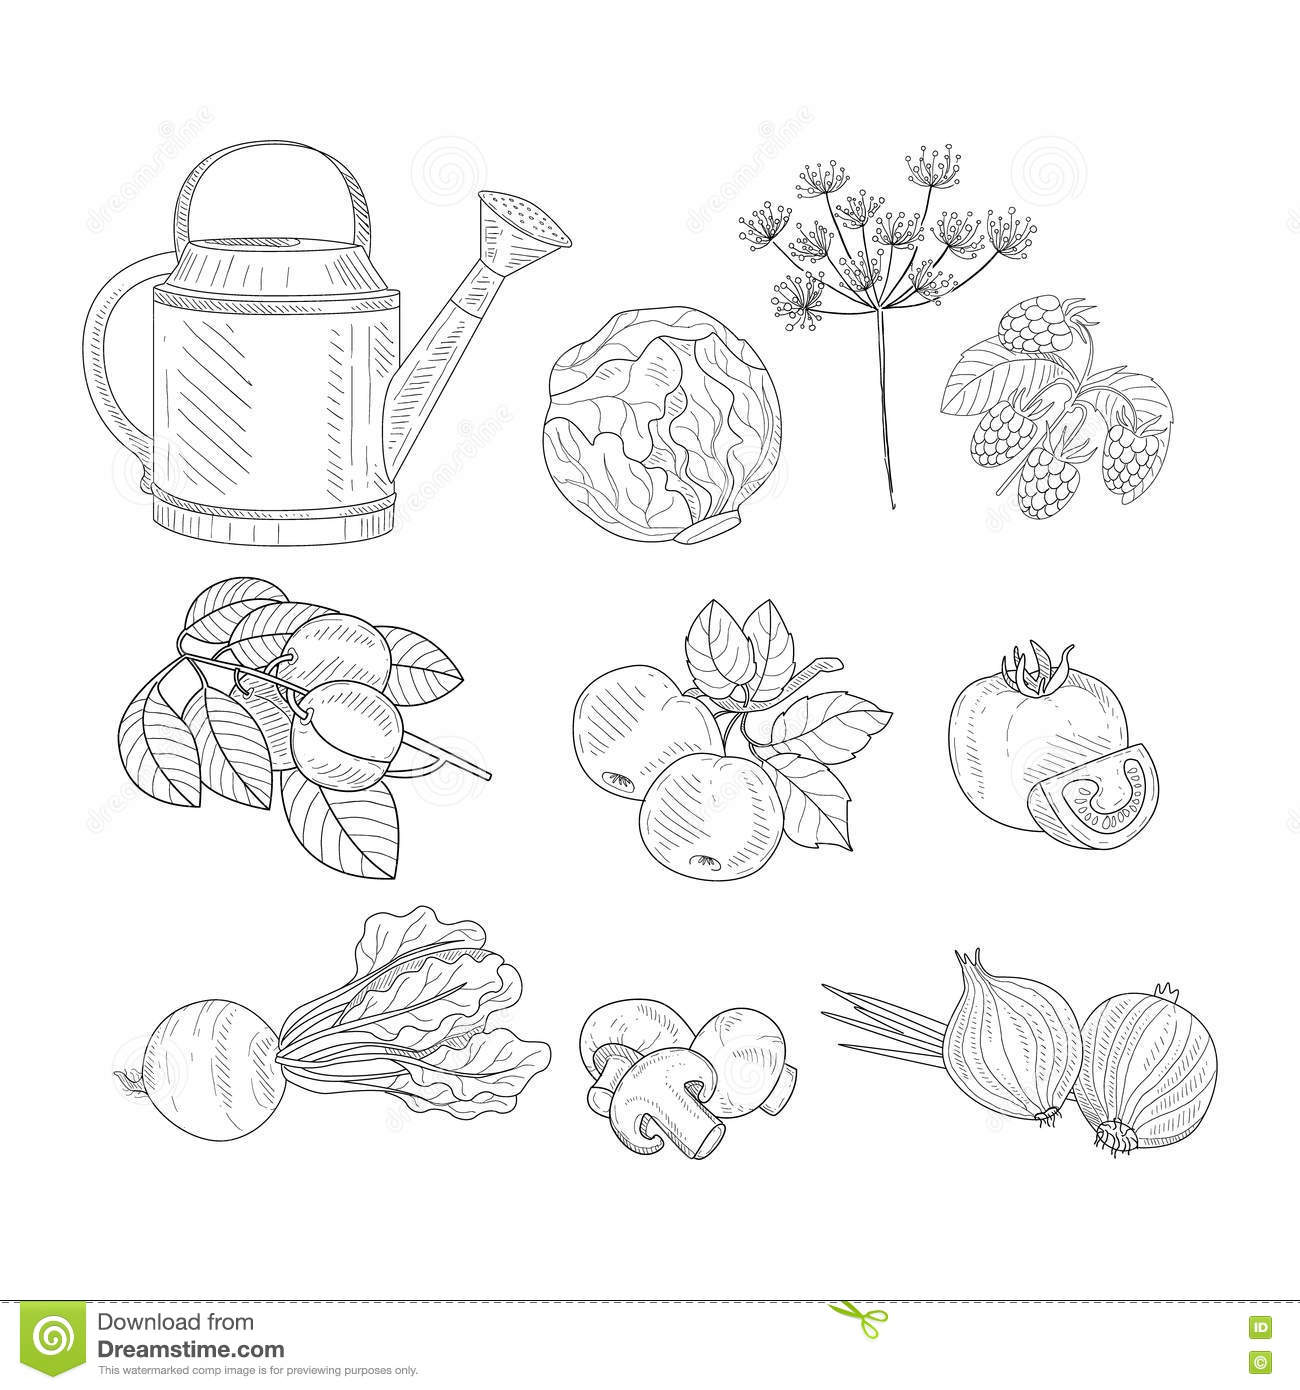 Farm Product Clipart Elements Hand Drawn Realistic Sketch Stock ... for Simple Farm Sketch  570bof